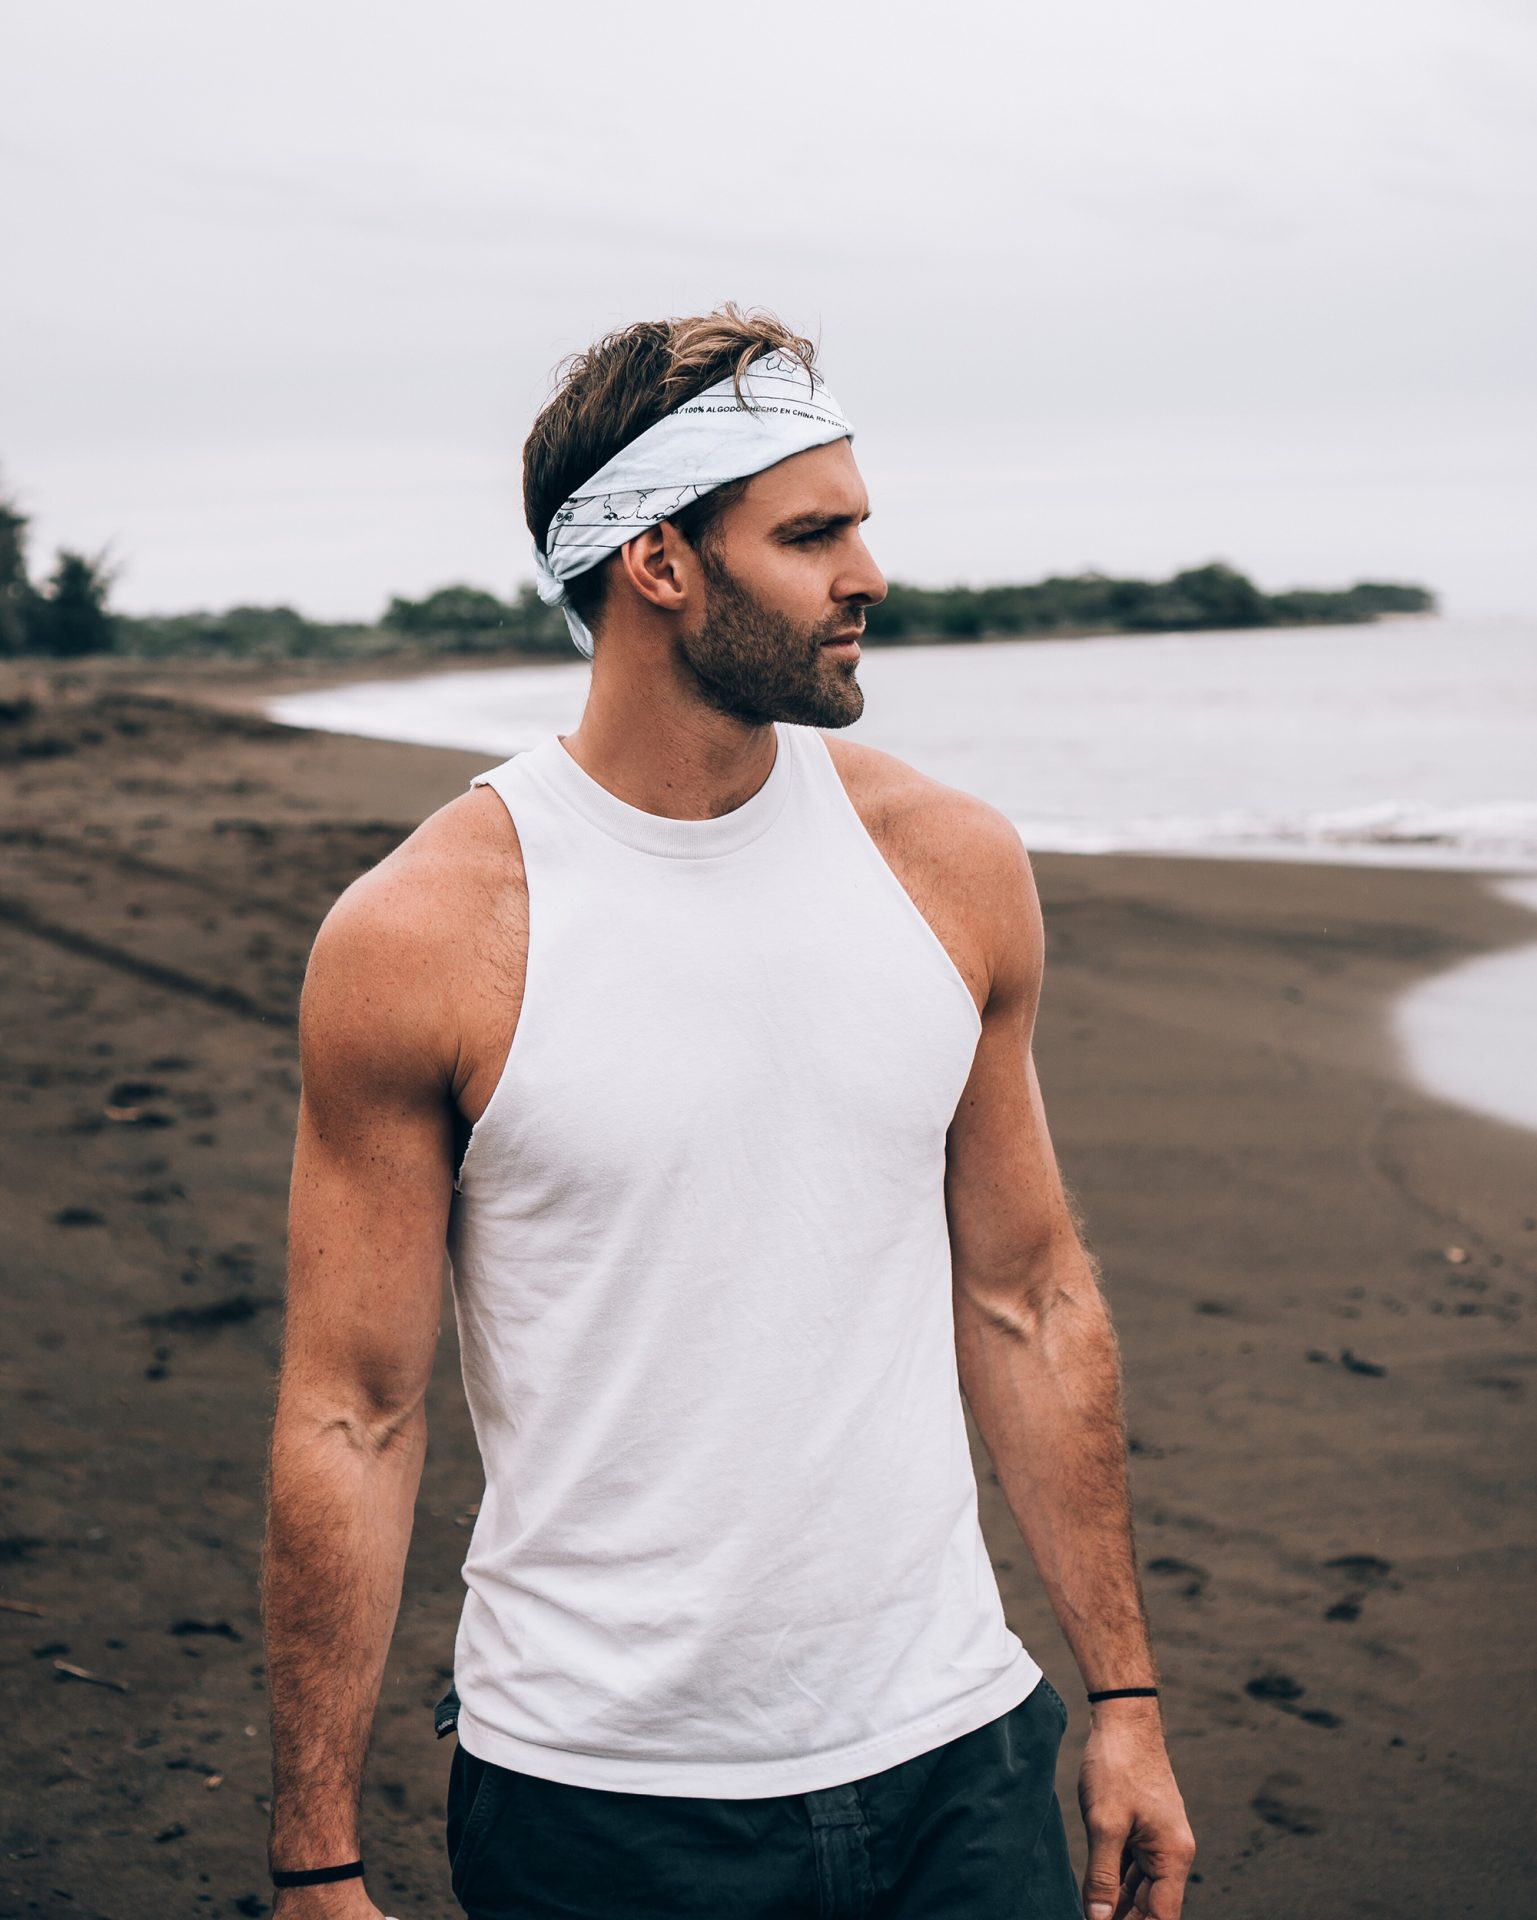 Guy on Beach Wearing White Bandanna, White Tank Top, and Jeans